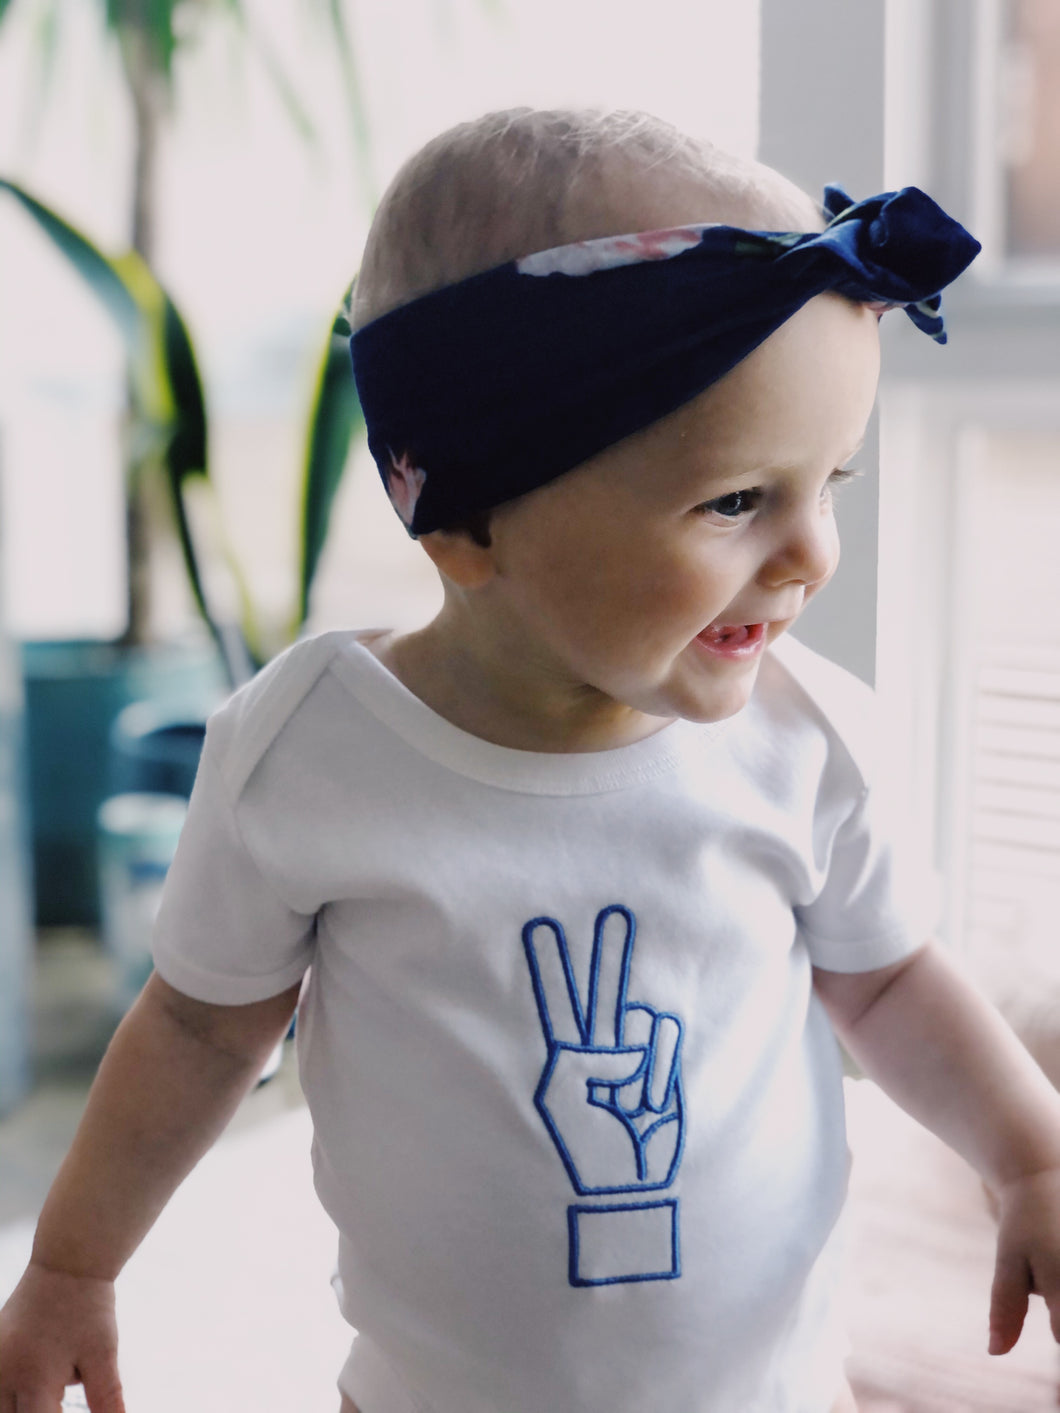 Peace sign baby onesie white - The perfect baby gift!